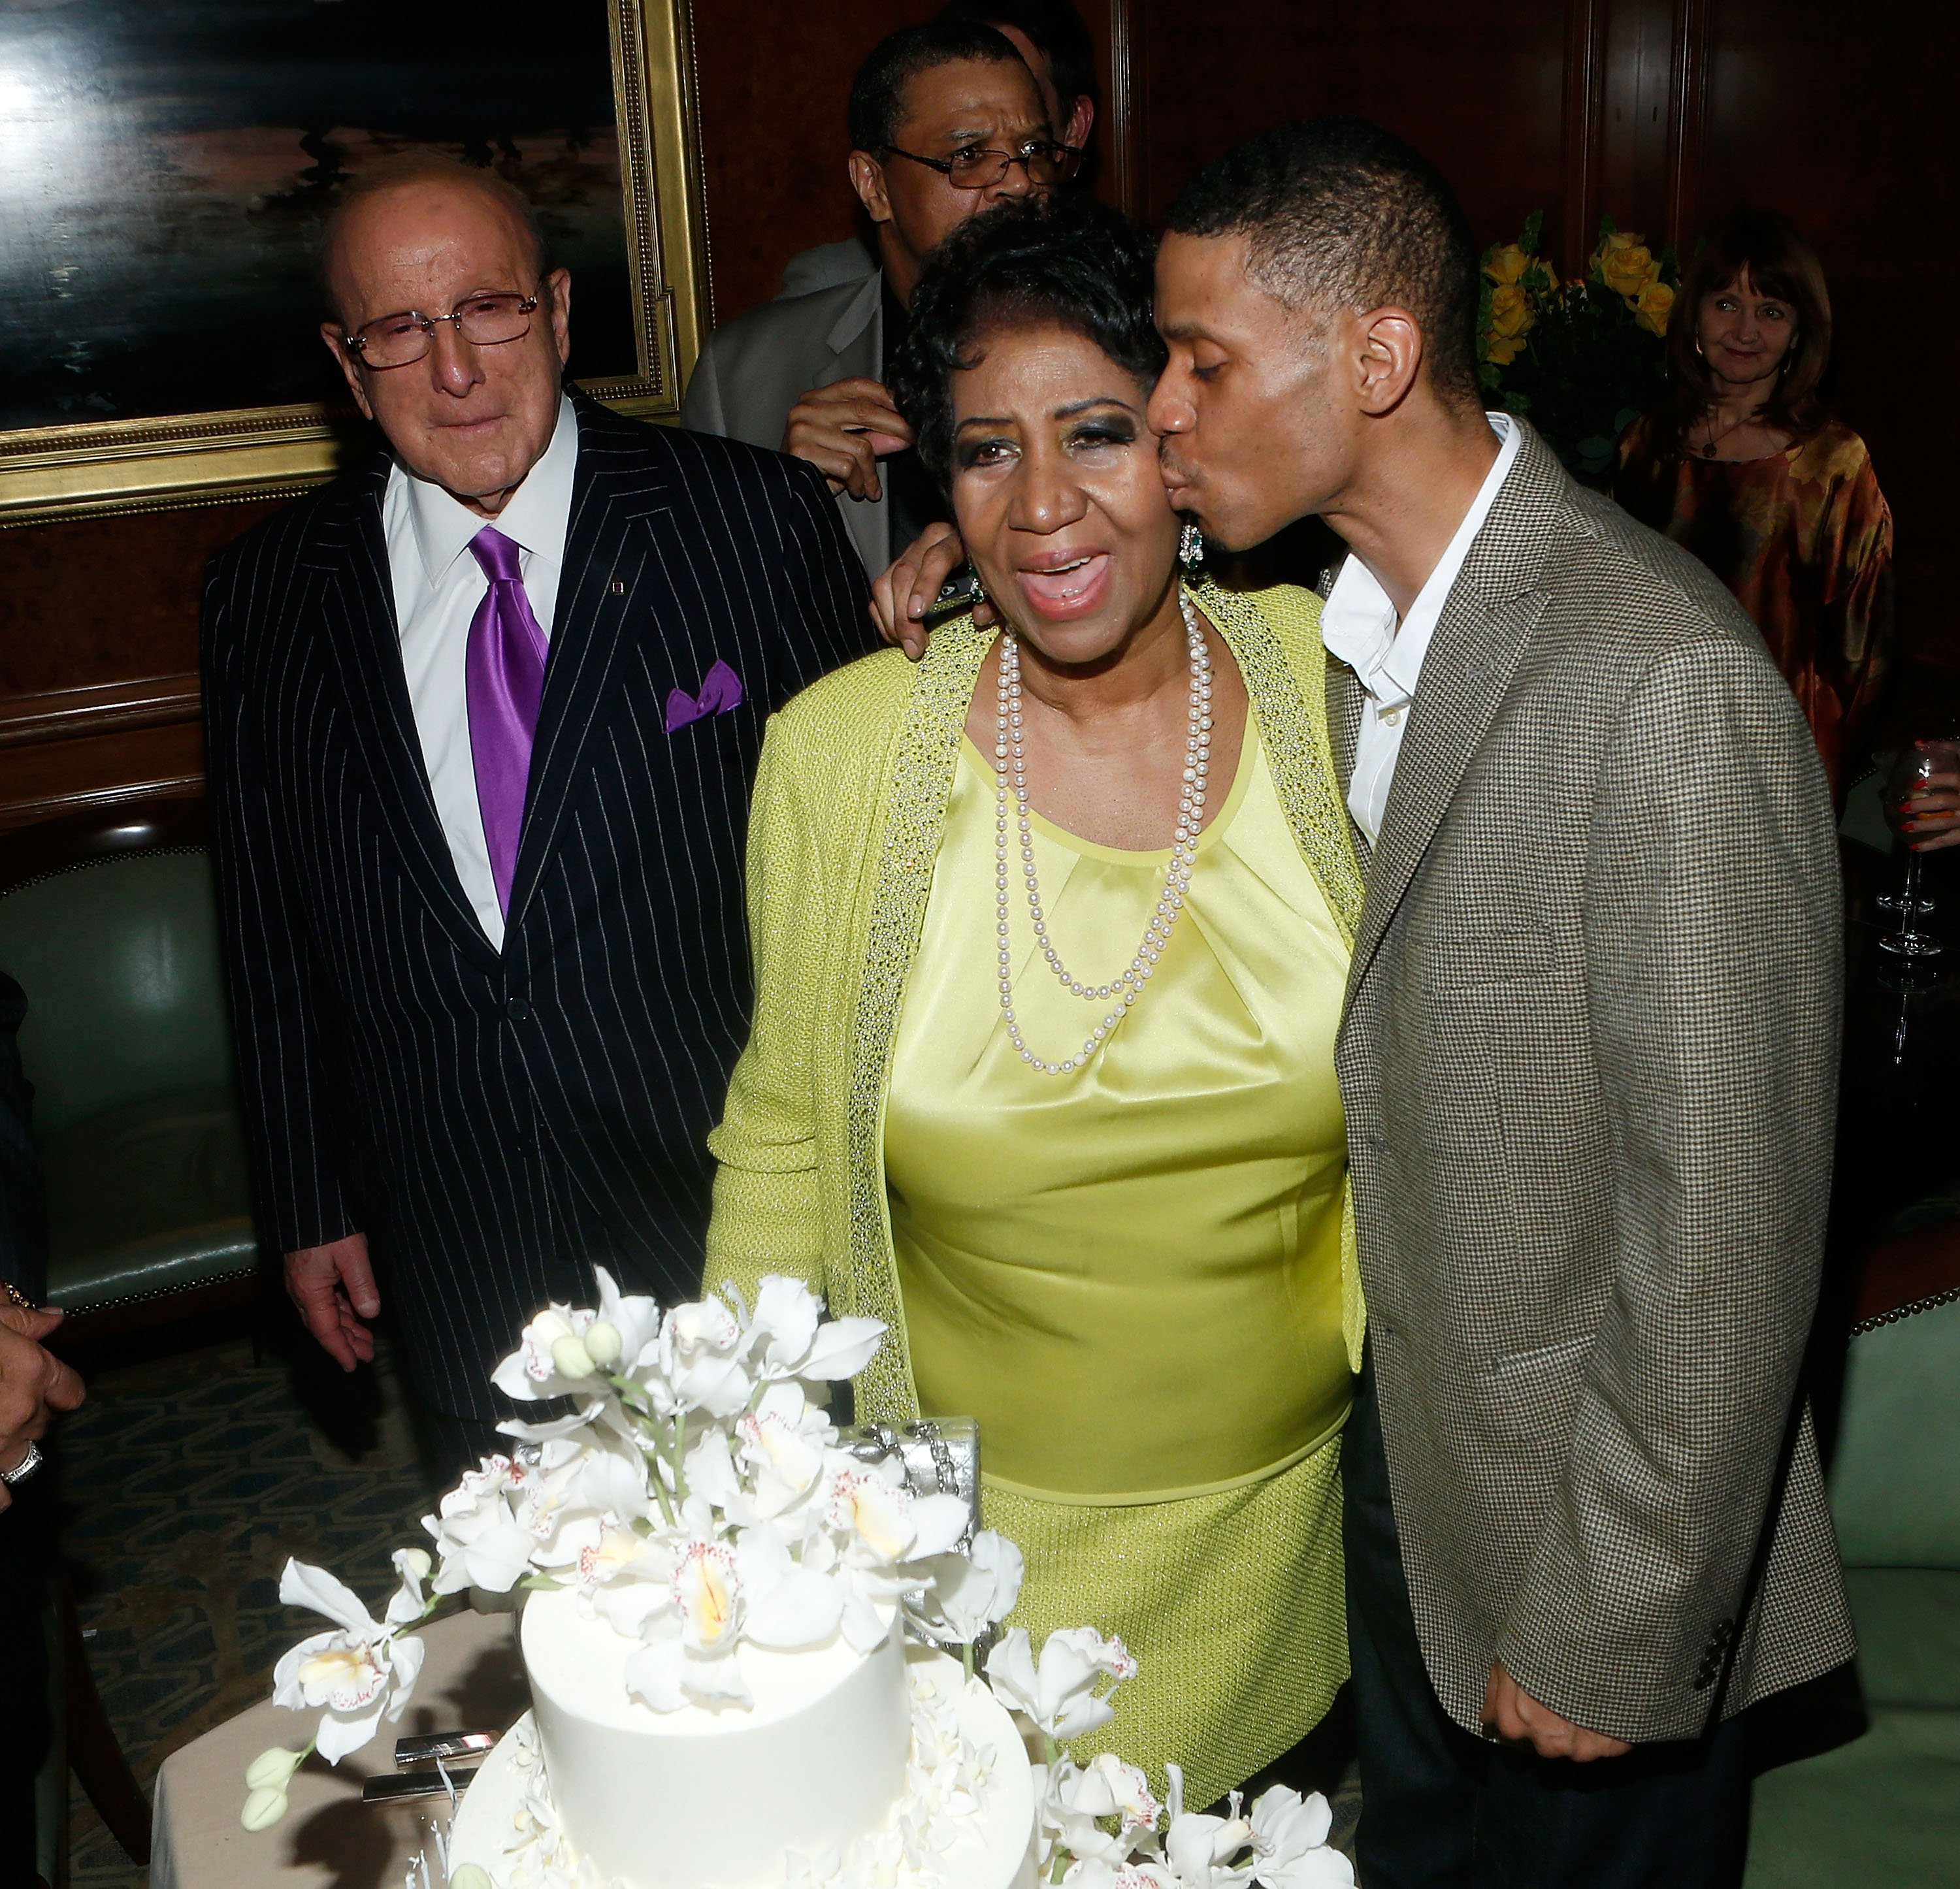 (L-R) Clive Davis, Aretha Franklin & Kecalf Franklin at her Birthday Celebration in New York City on March 22, 2014 | Photo: Getty Images